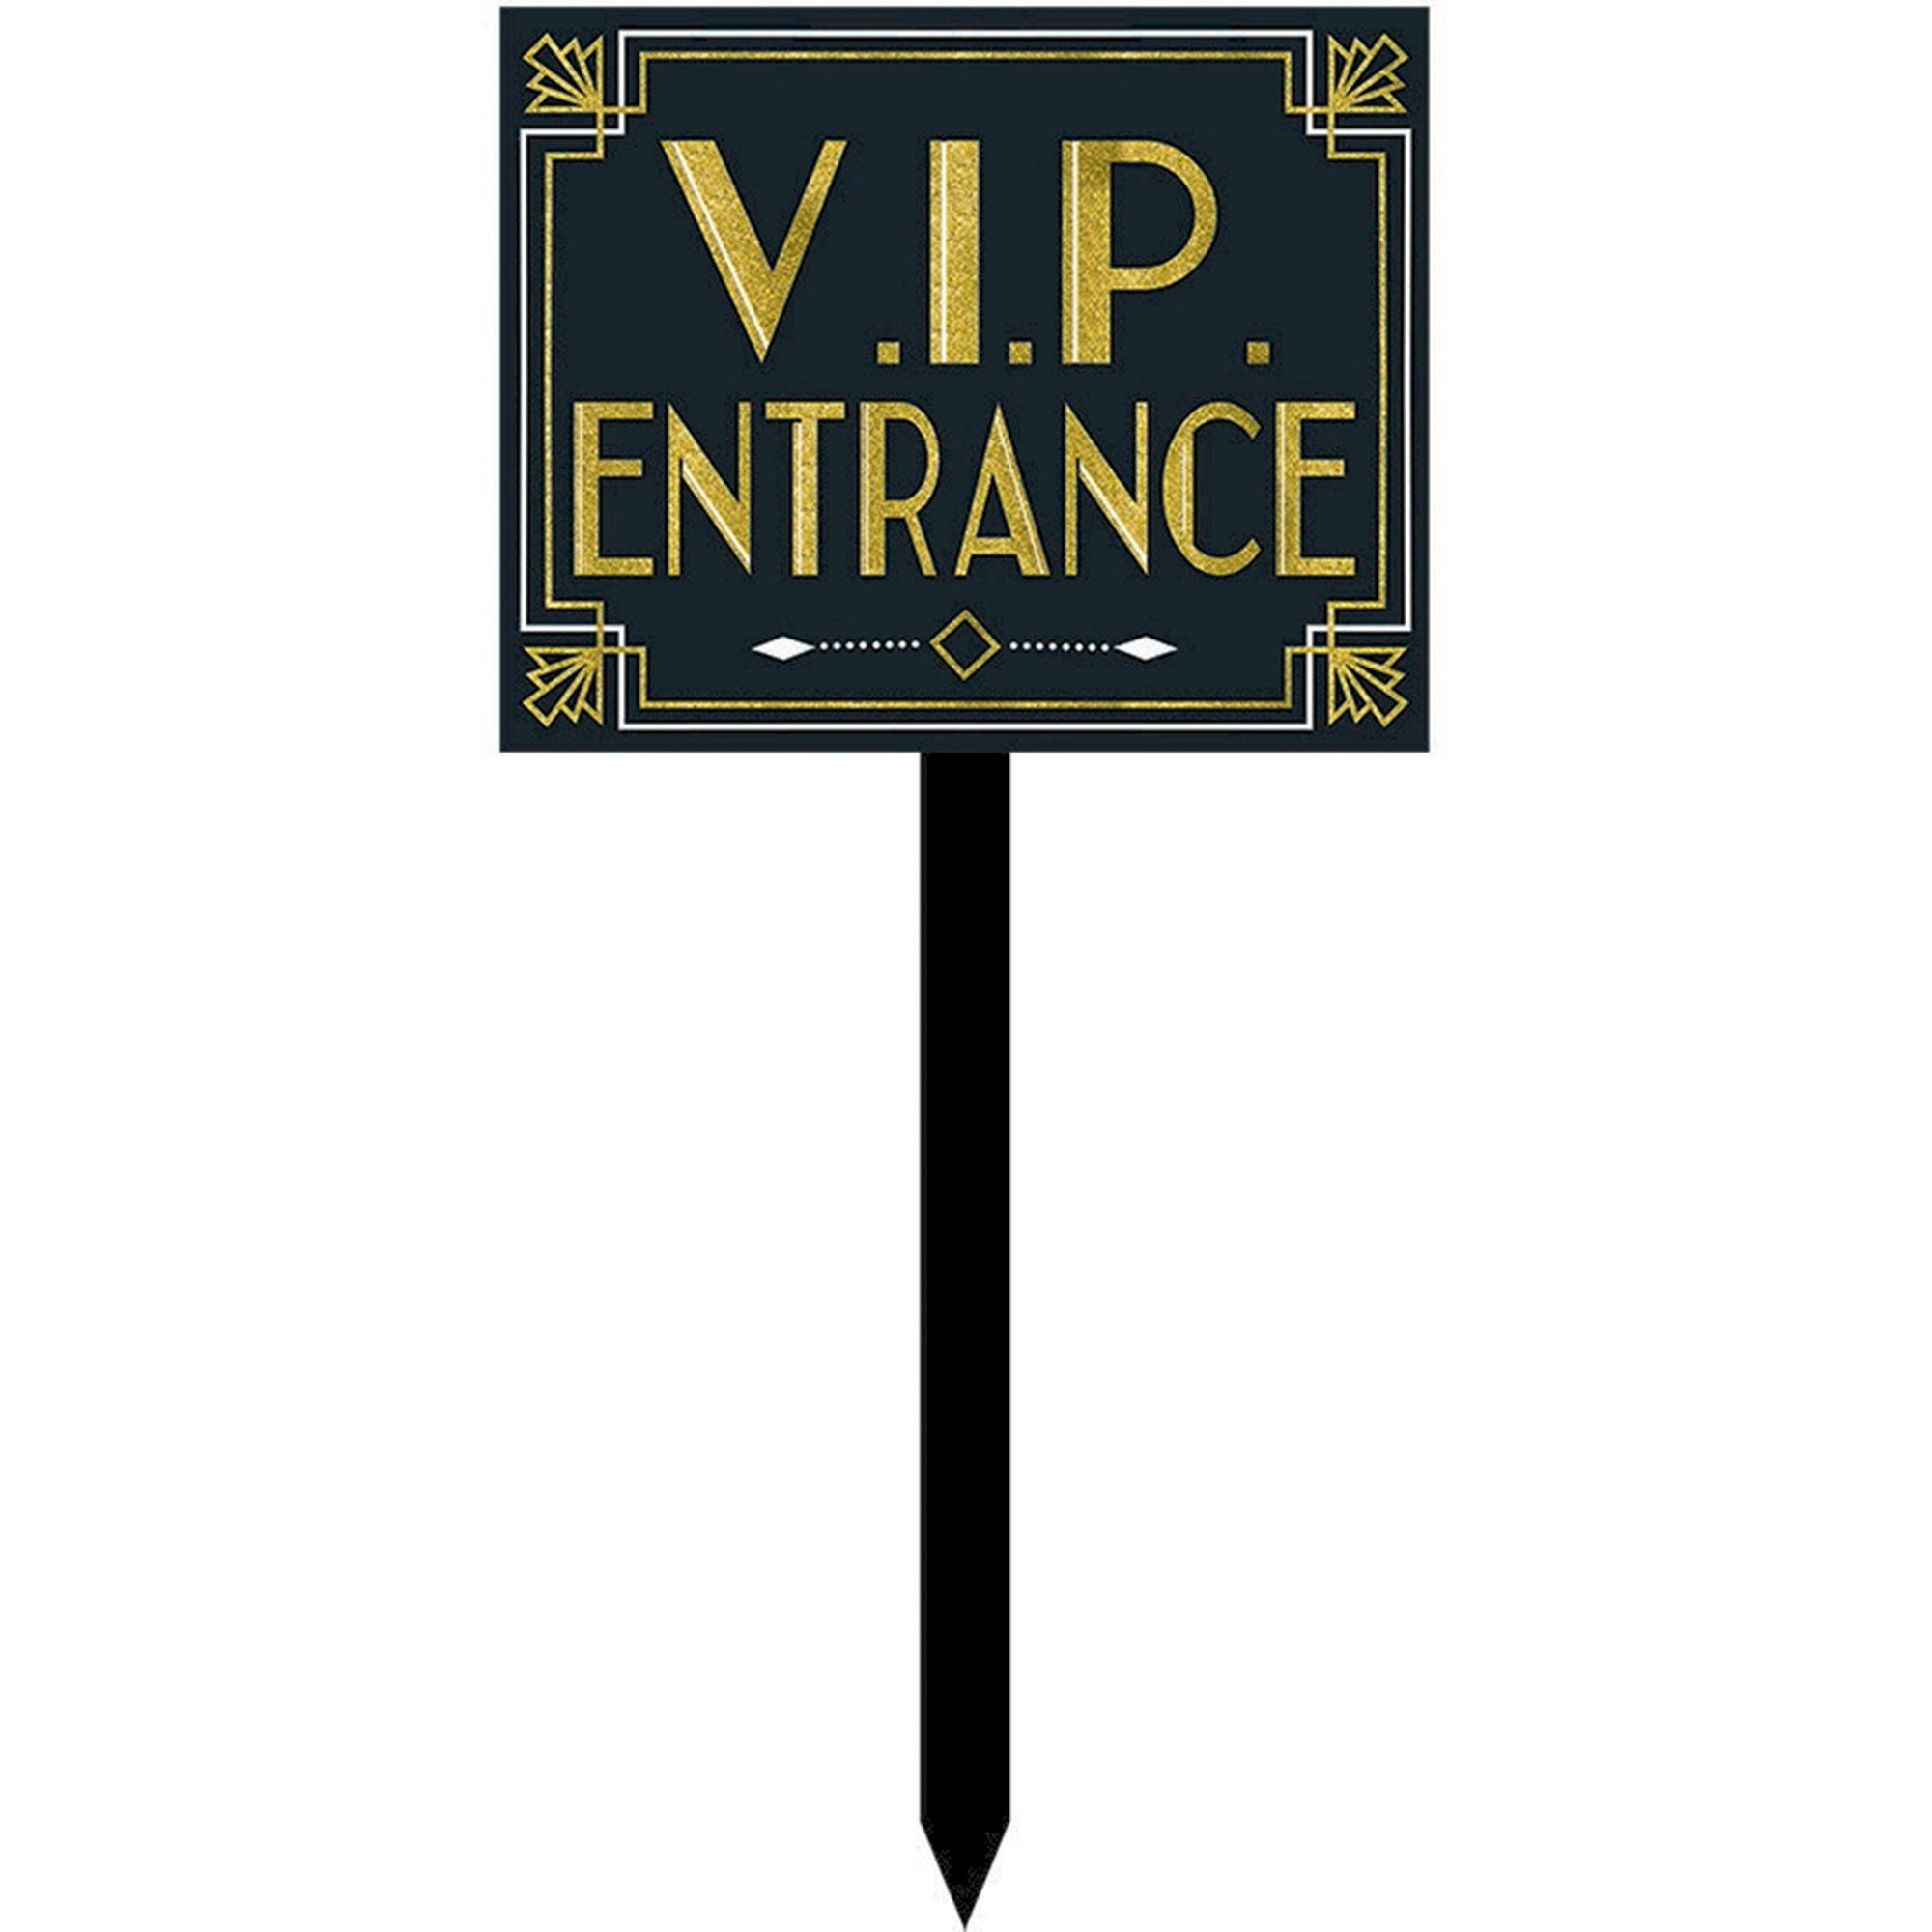 Glitz & Glam VIP Entrance Large Yard Stake